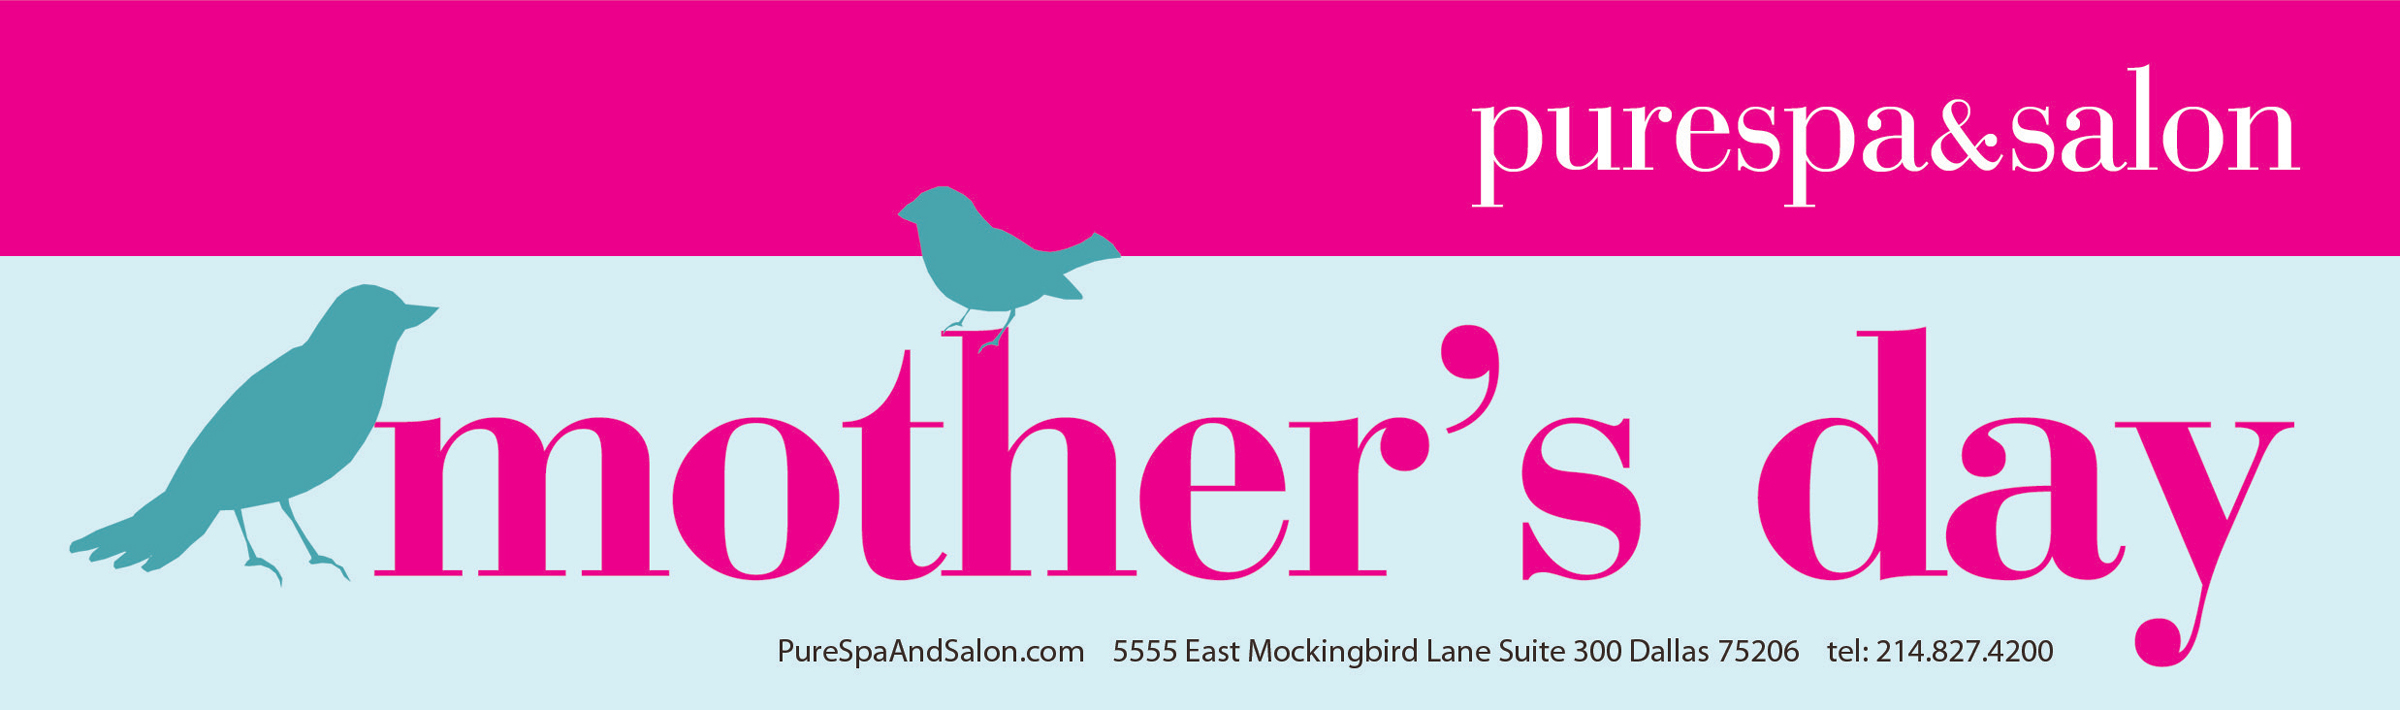 Pure Spa and Salon - Mothers Day specials